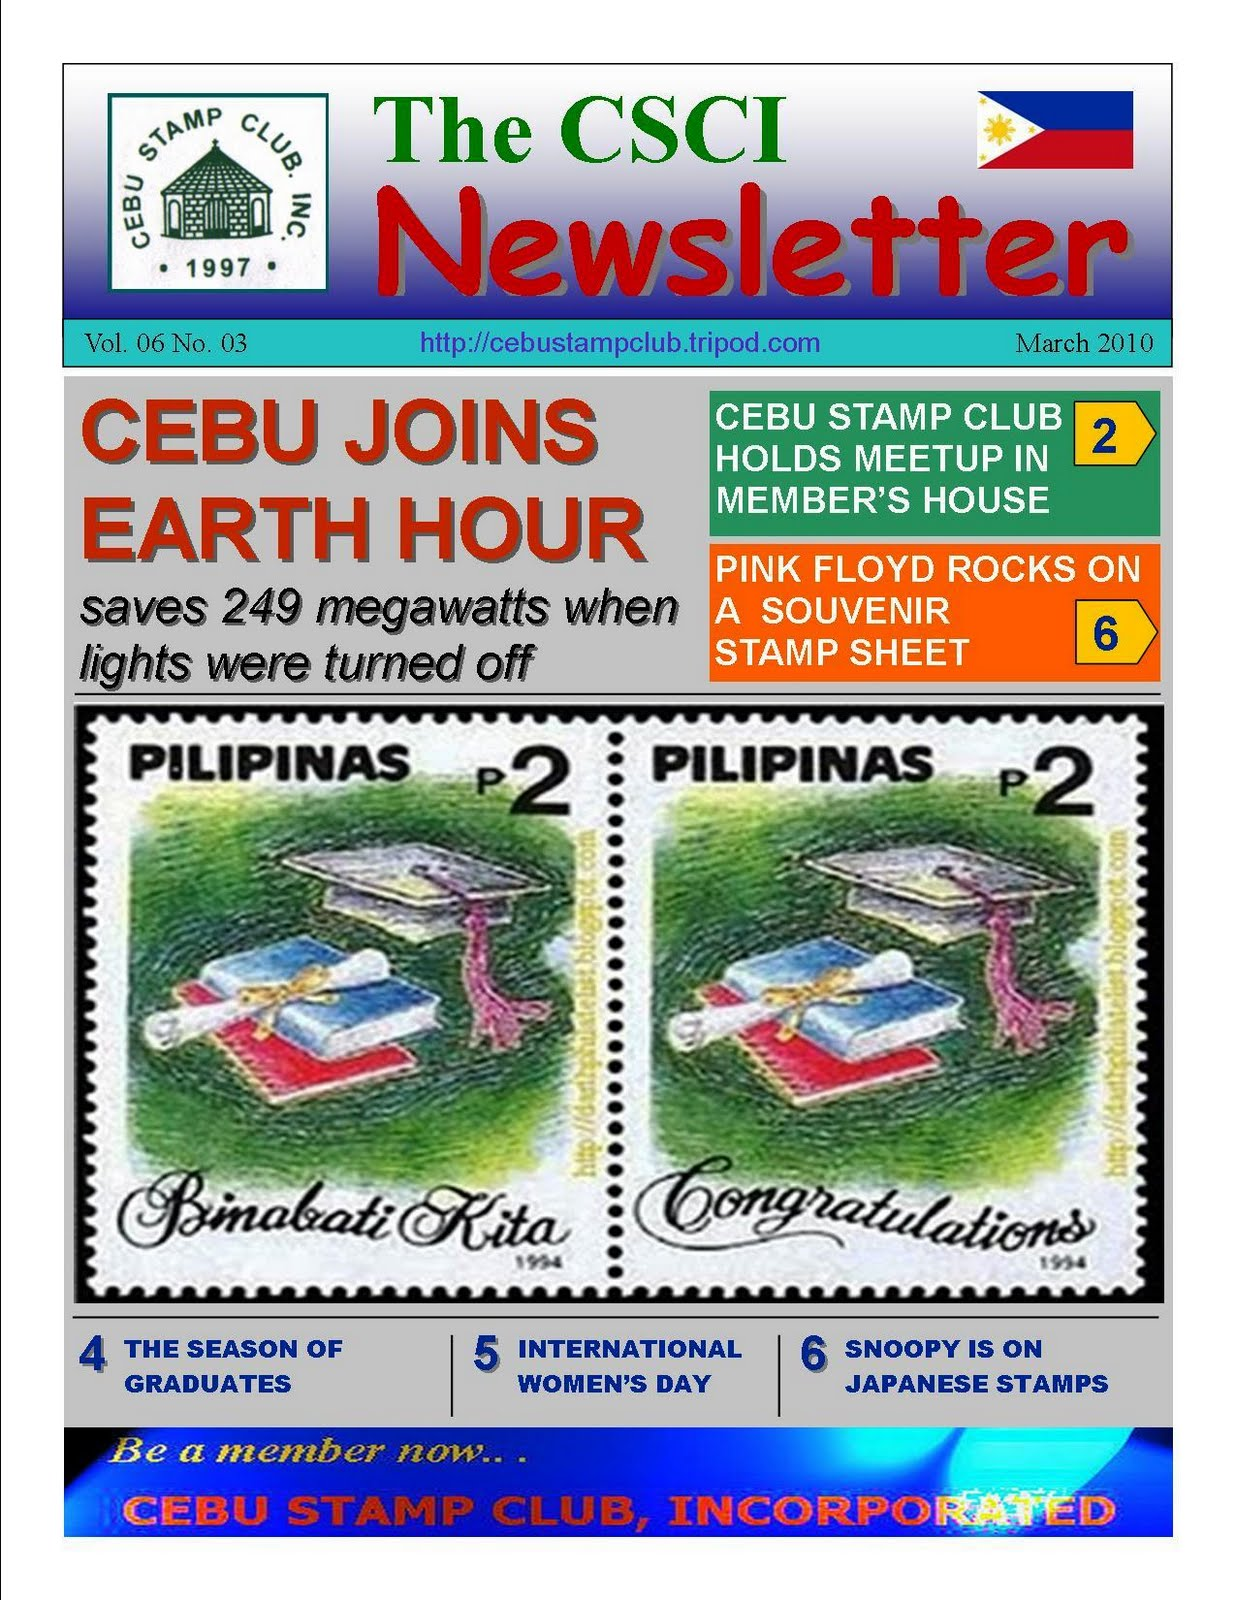 Where in Cebu can I buy stamps for my stamp collection?